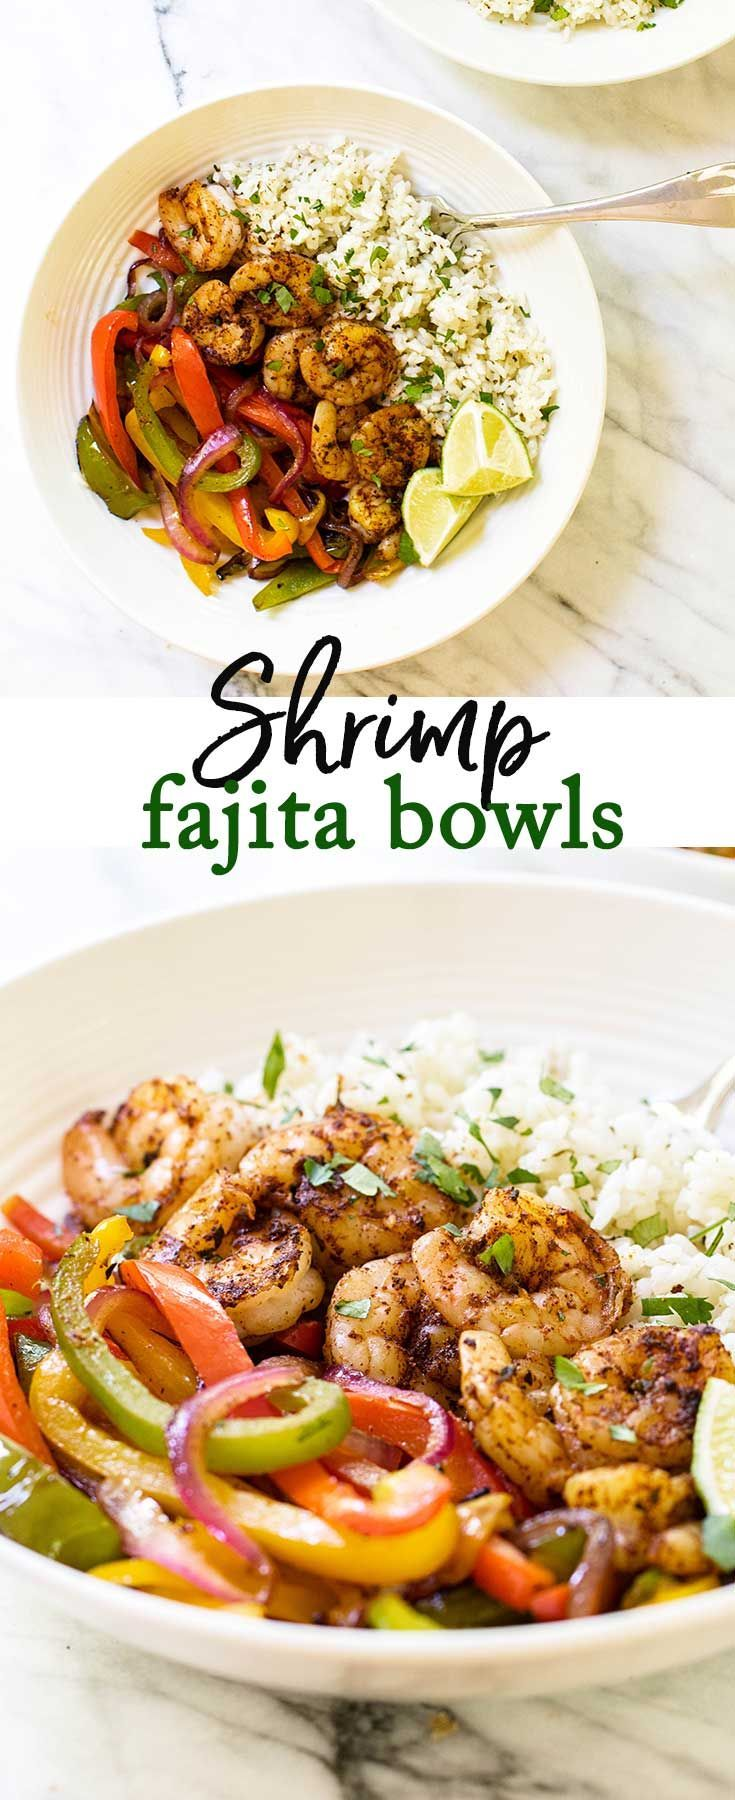 Shrimp Fajita Bowls | Girl Gone Gourmet